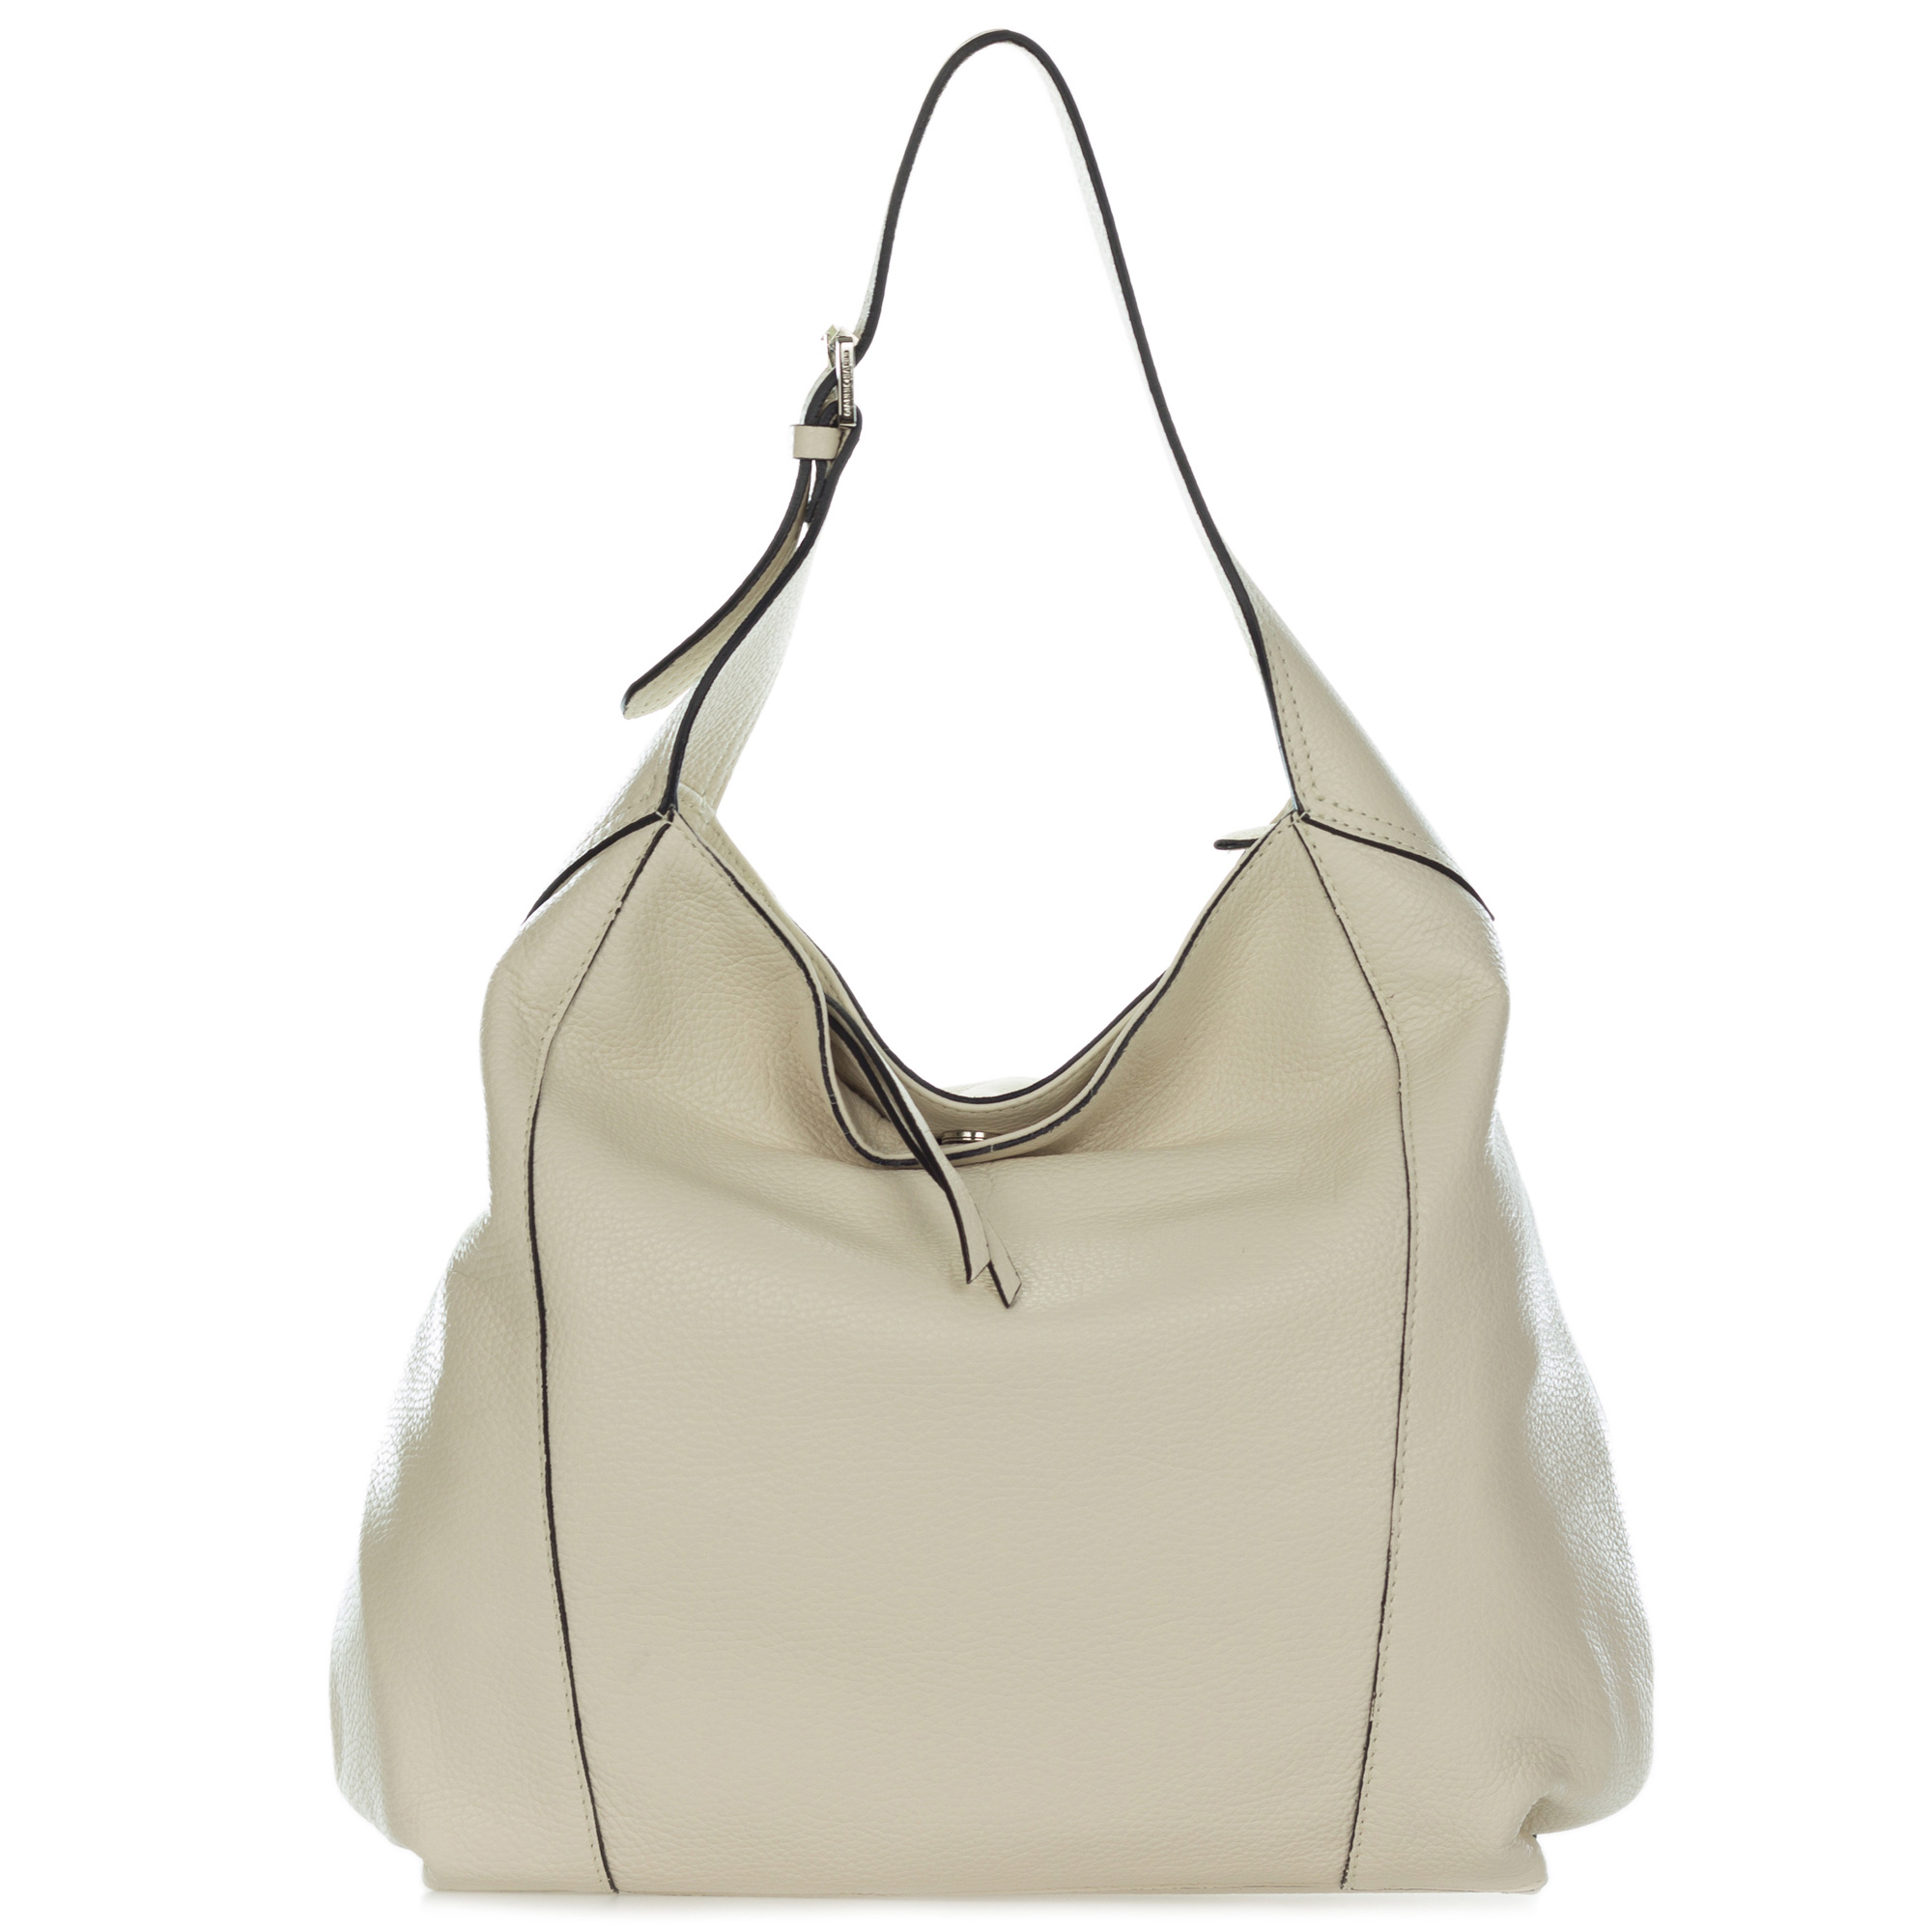 79d68c5d32 Add to My Lists. Gianni Chiarini Italian Made Light Beige Leather Large  Hobo Bag